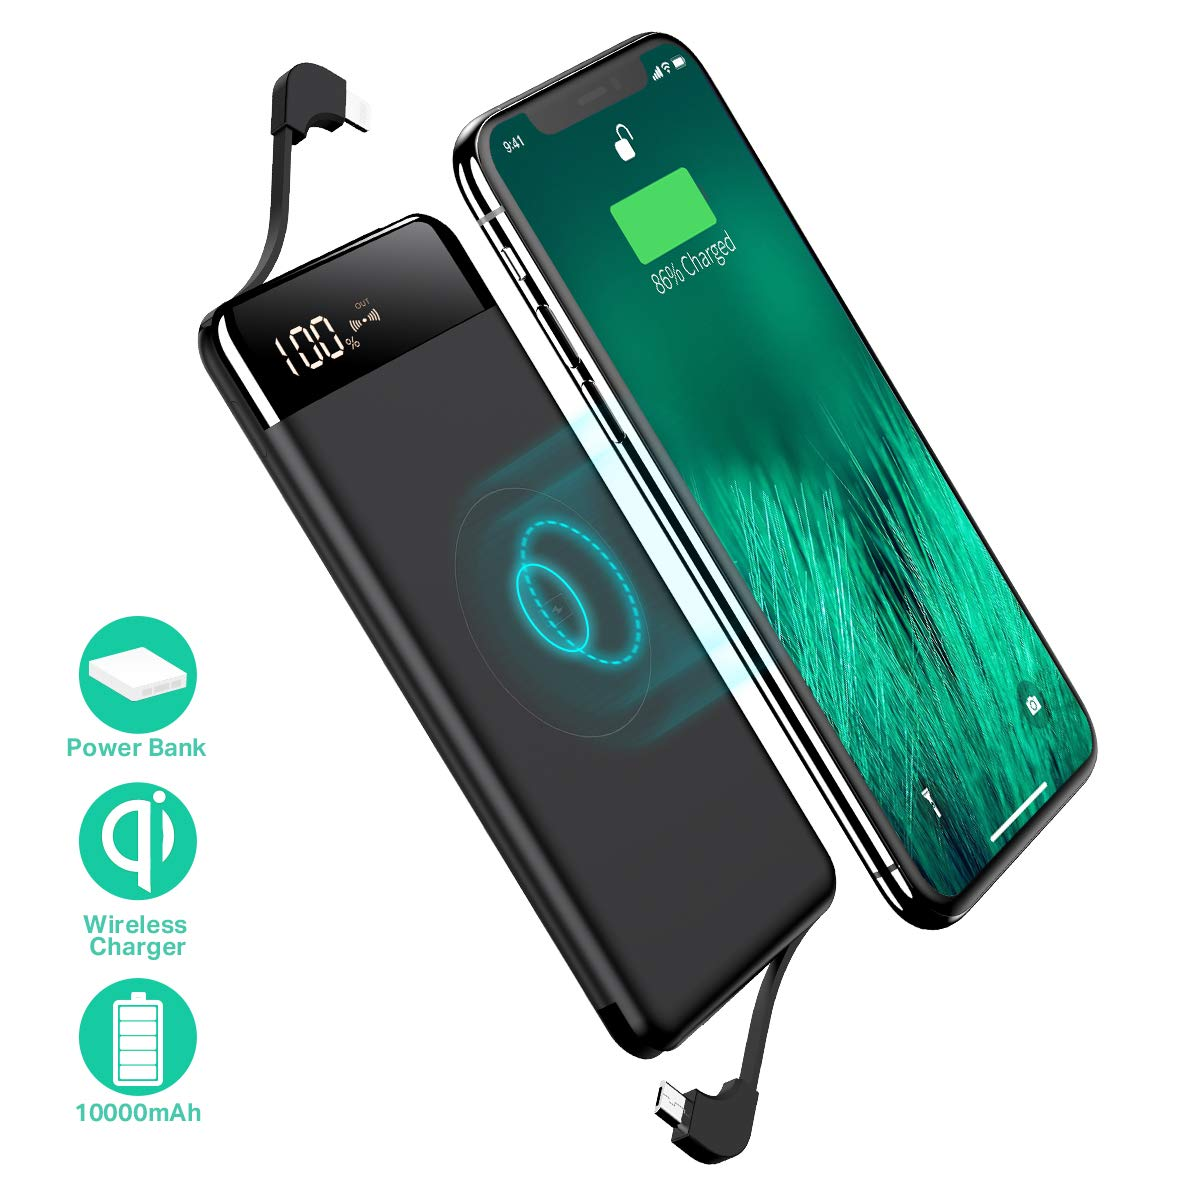 SANAG Wireless Portable Charger, 10000mAh Wireless Charger Power Bank Built in Cable External Battery Pack Compatible with iPhone 8/8 Plus, Samsung S7 S8 S9, Note 7 8, iPhone X/XS/XR(Black) Shenzhen Diyidu Technology Co. Ltd.